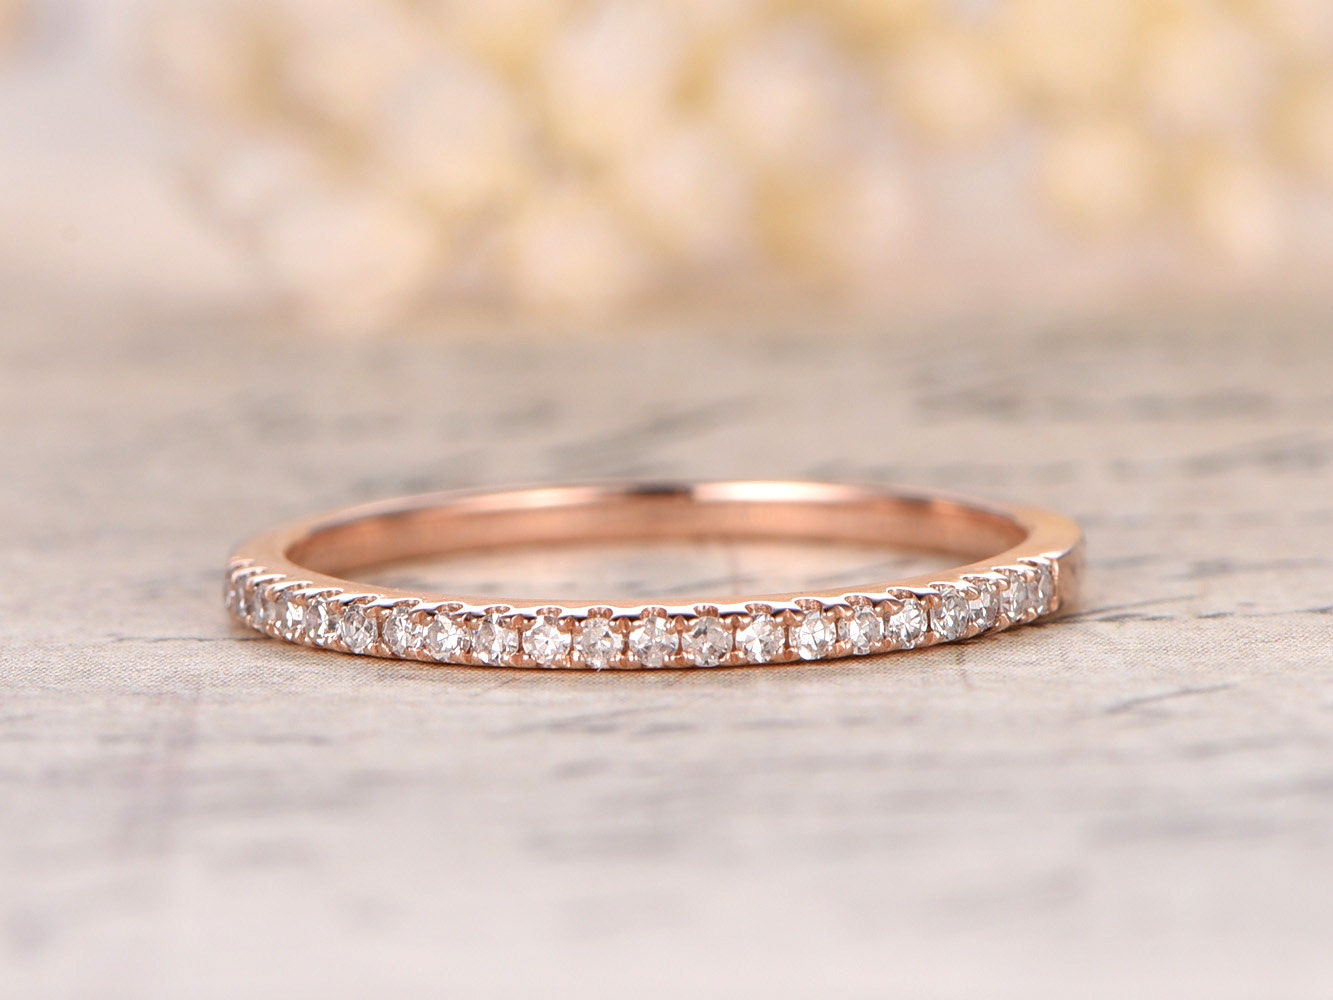 eternity bands eternity wedding bands Valentine s day present 14K Rose Gold Wedding Band Half Eternity Ring Engagement Ring Stackable Ring Micro Pave Diamond Ring Eternity Bands